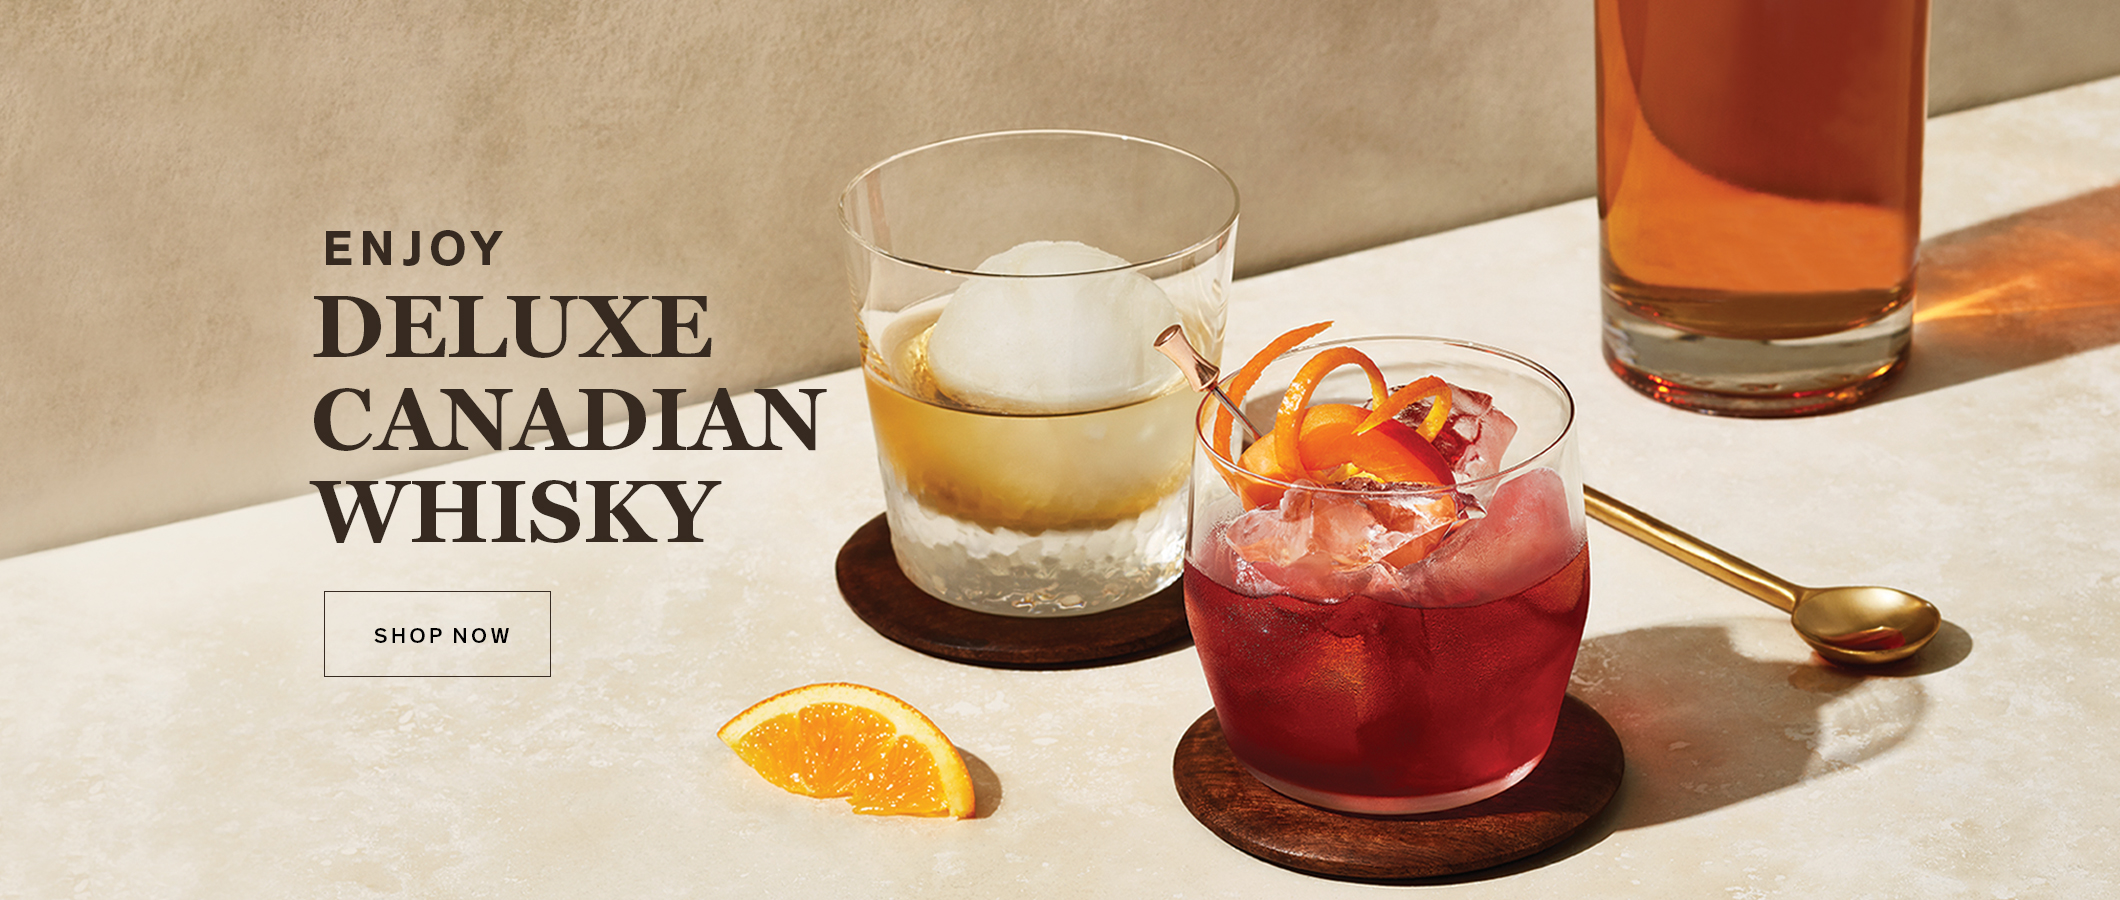 Enjoy Deluxe Canadian Whisky. SHOP NOW